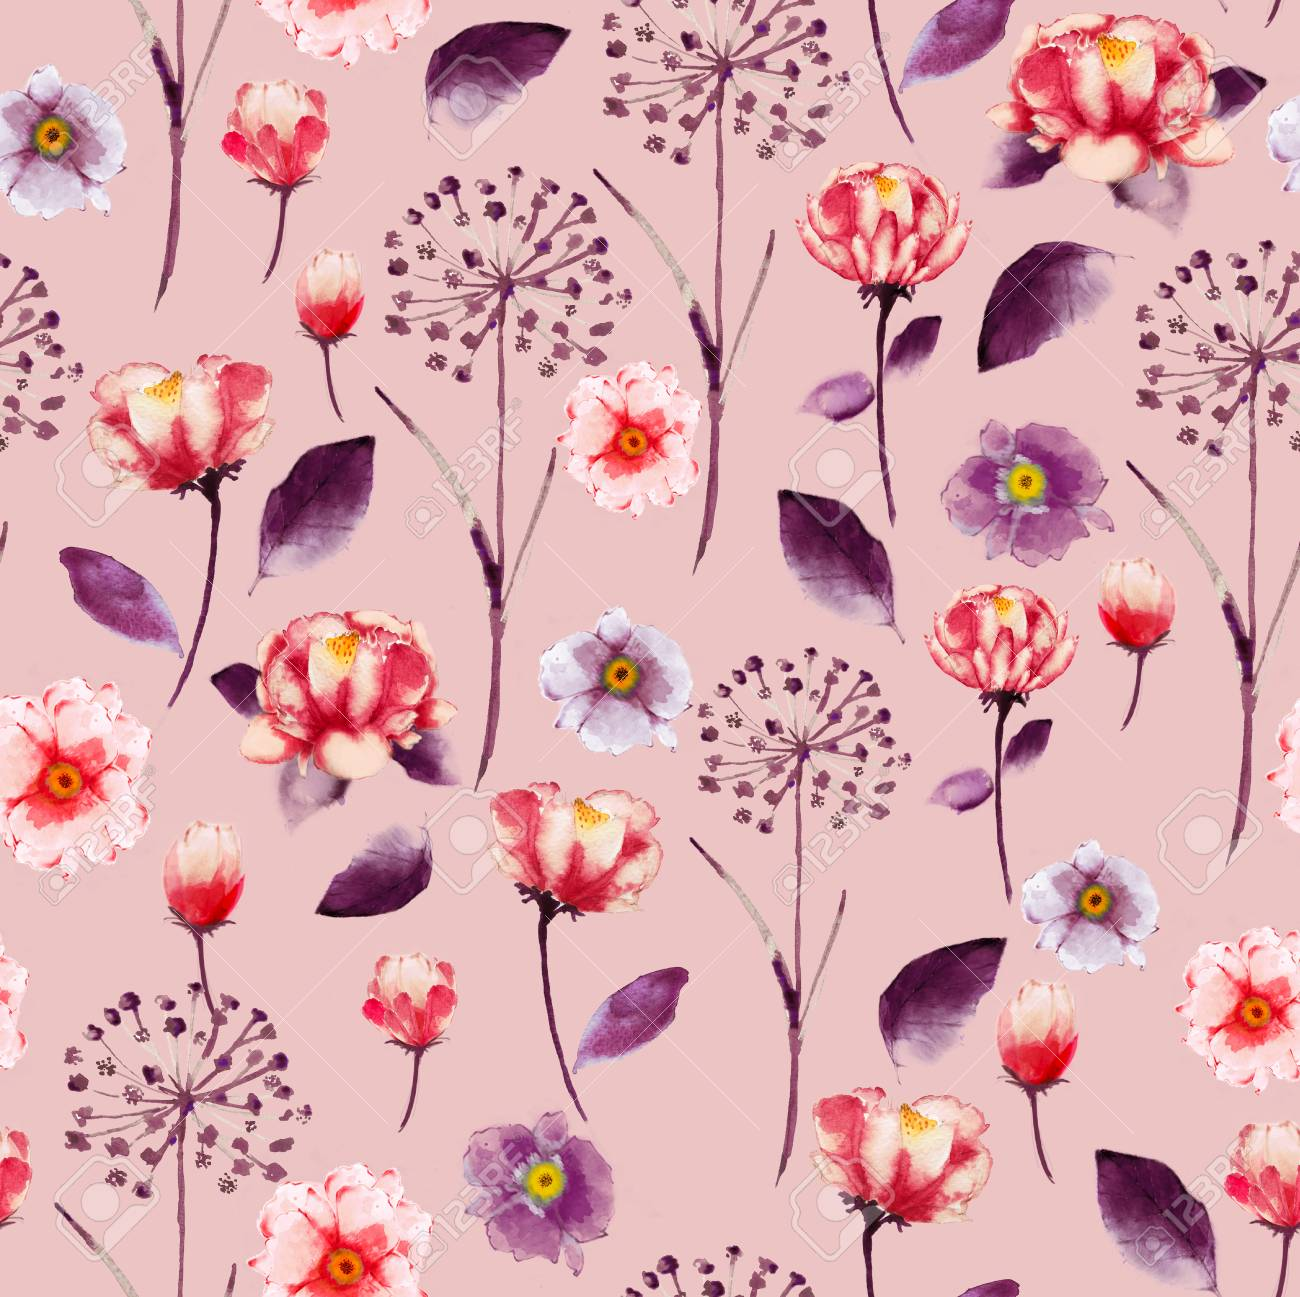 Seamless Watercolor L Floral Pattern Delicate Flower Wallpaper